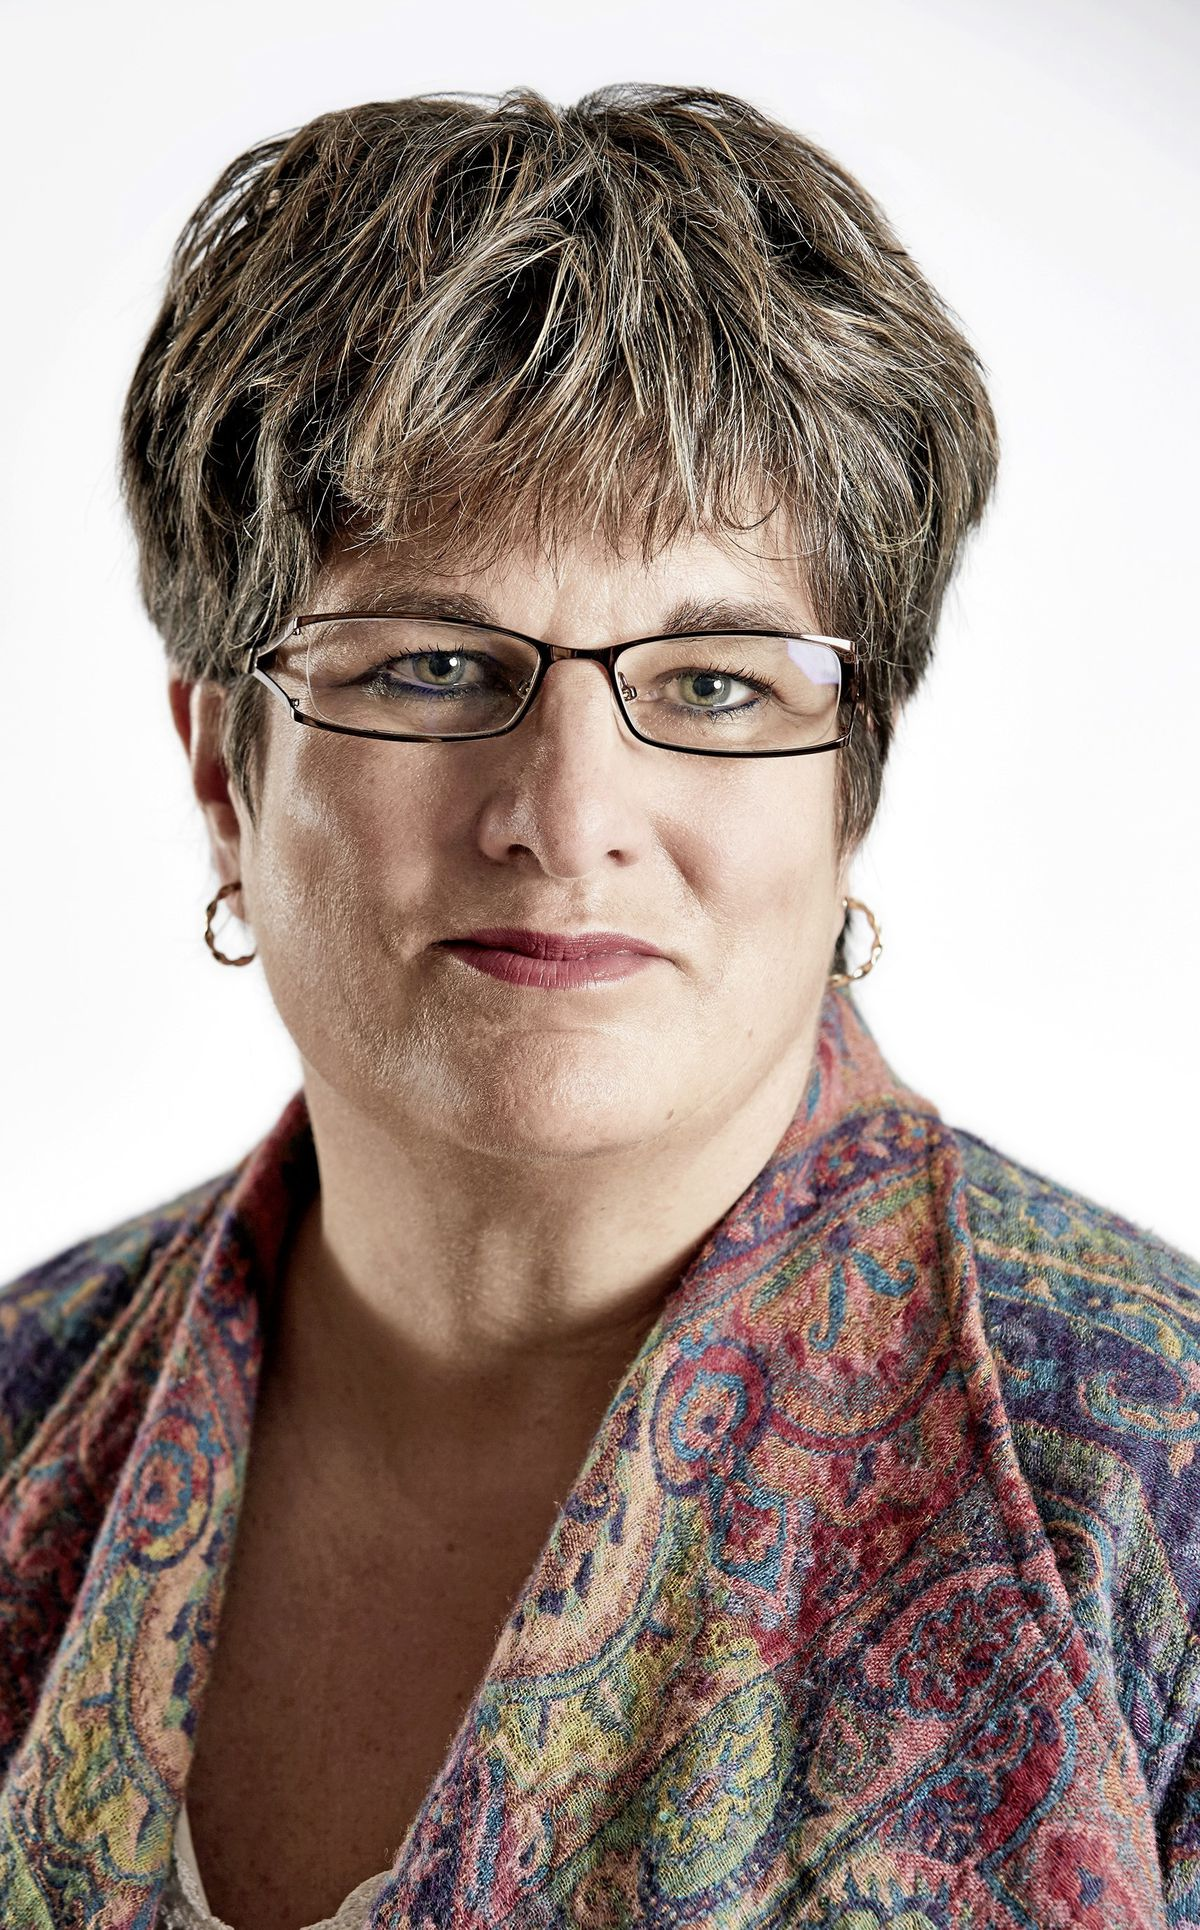 Ozanne Foundation creator, LGBTI rights spokesperson Jayne Ozanne, is a senior member of the Church of England's Synod.